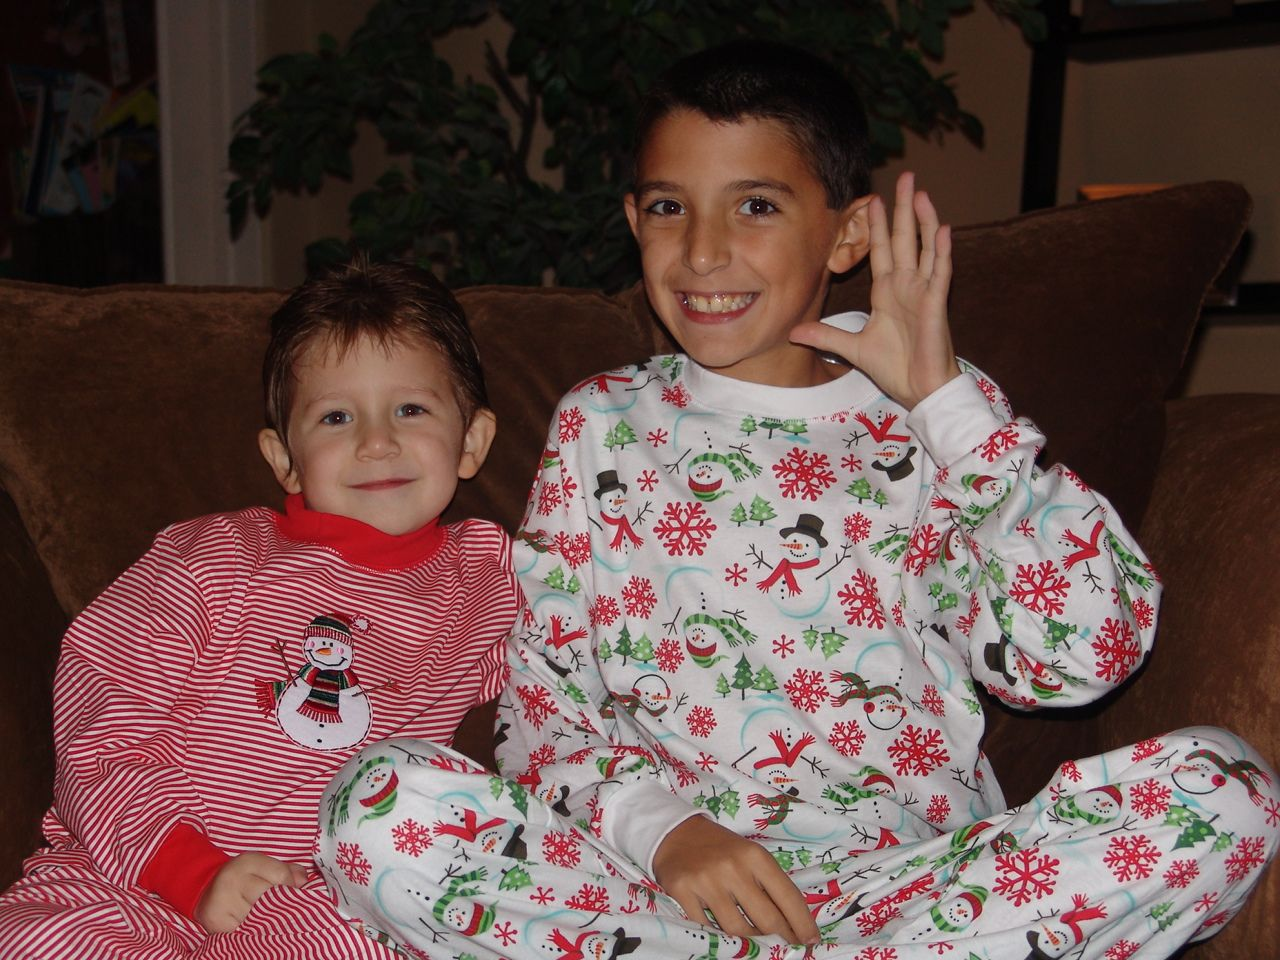 Kids Christmas Pajamas.Kids Christmas Pajamas My Boys In Skivvydoodles Pajamas